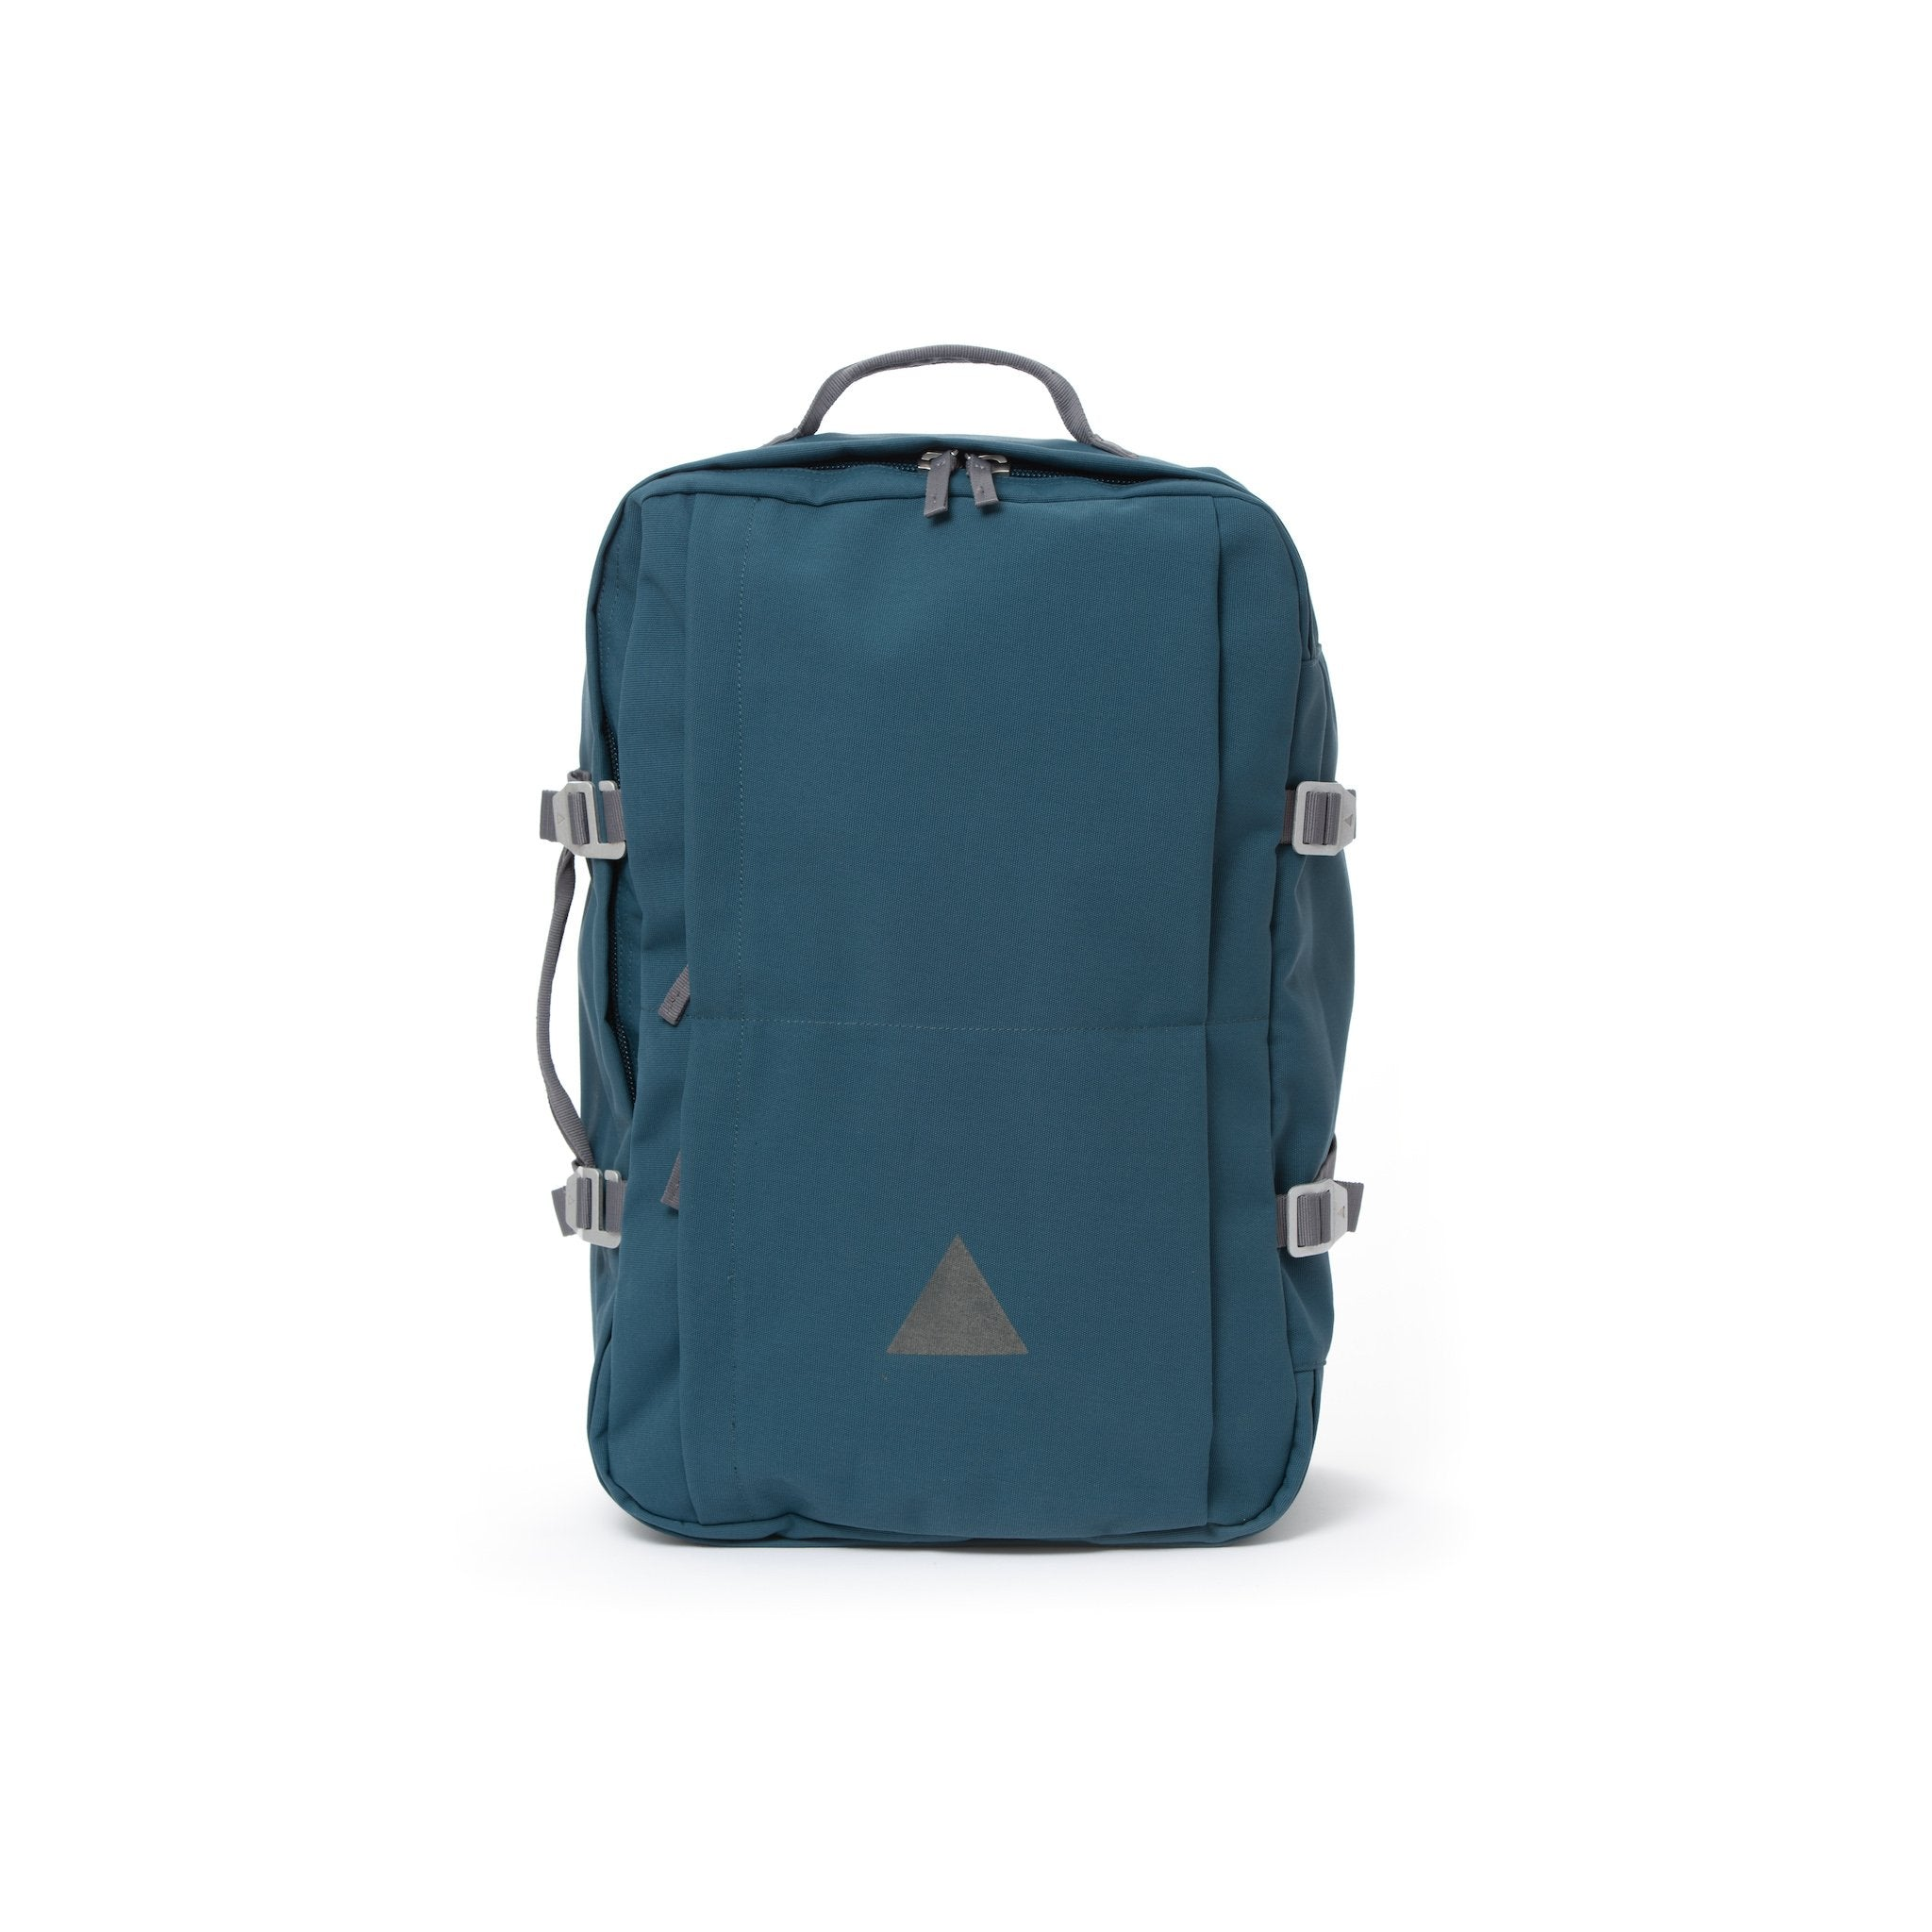 Blue recycled canvas travel backpack.